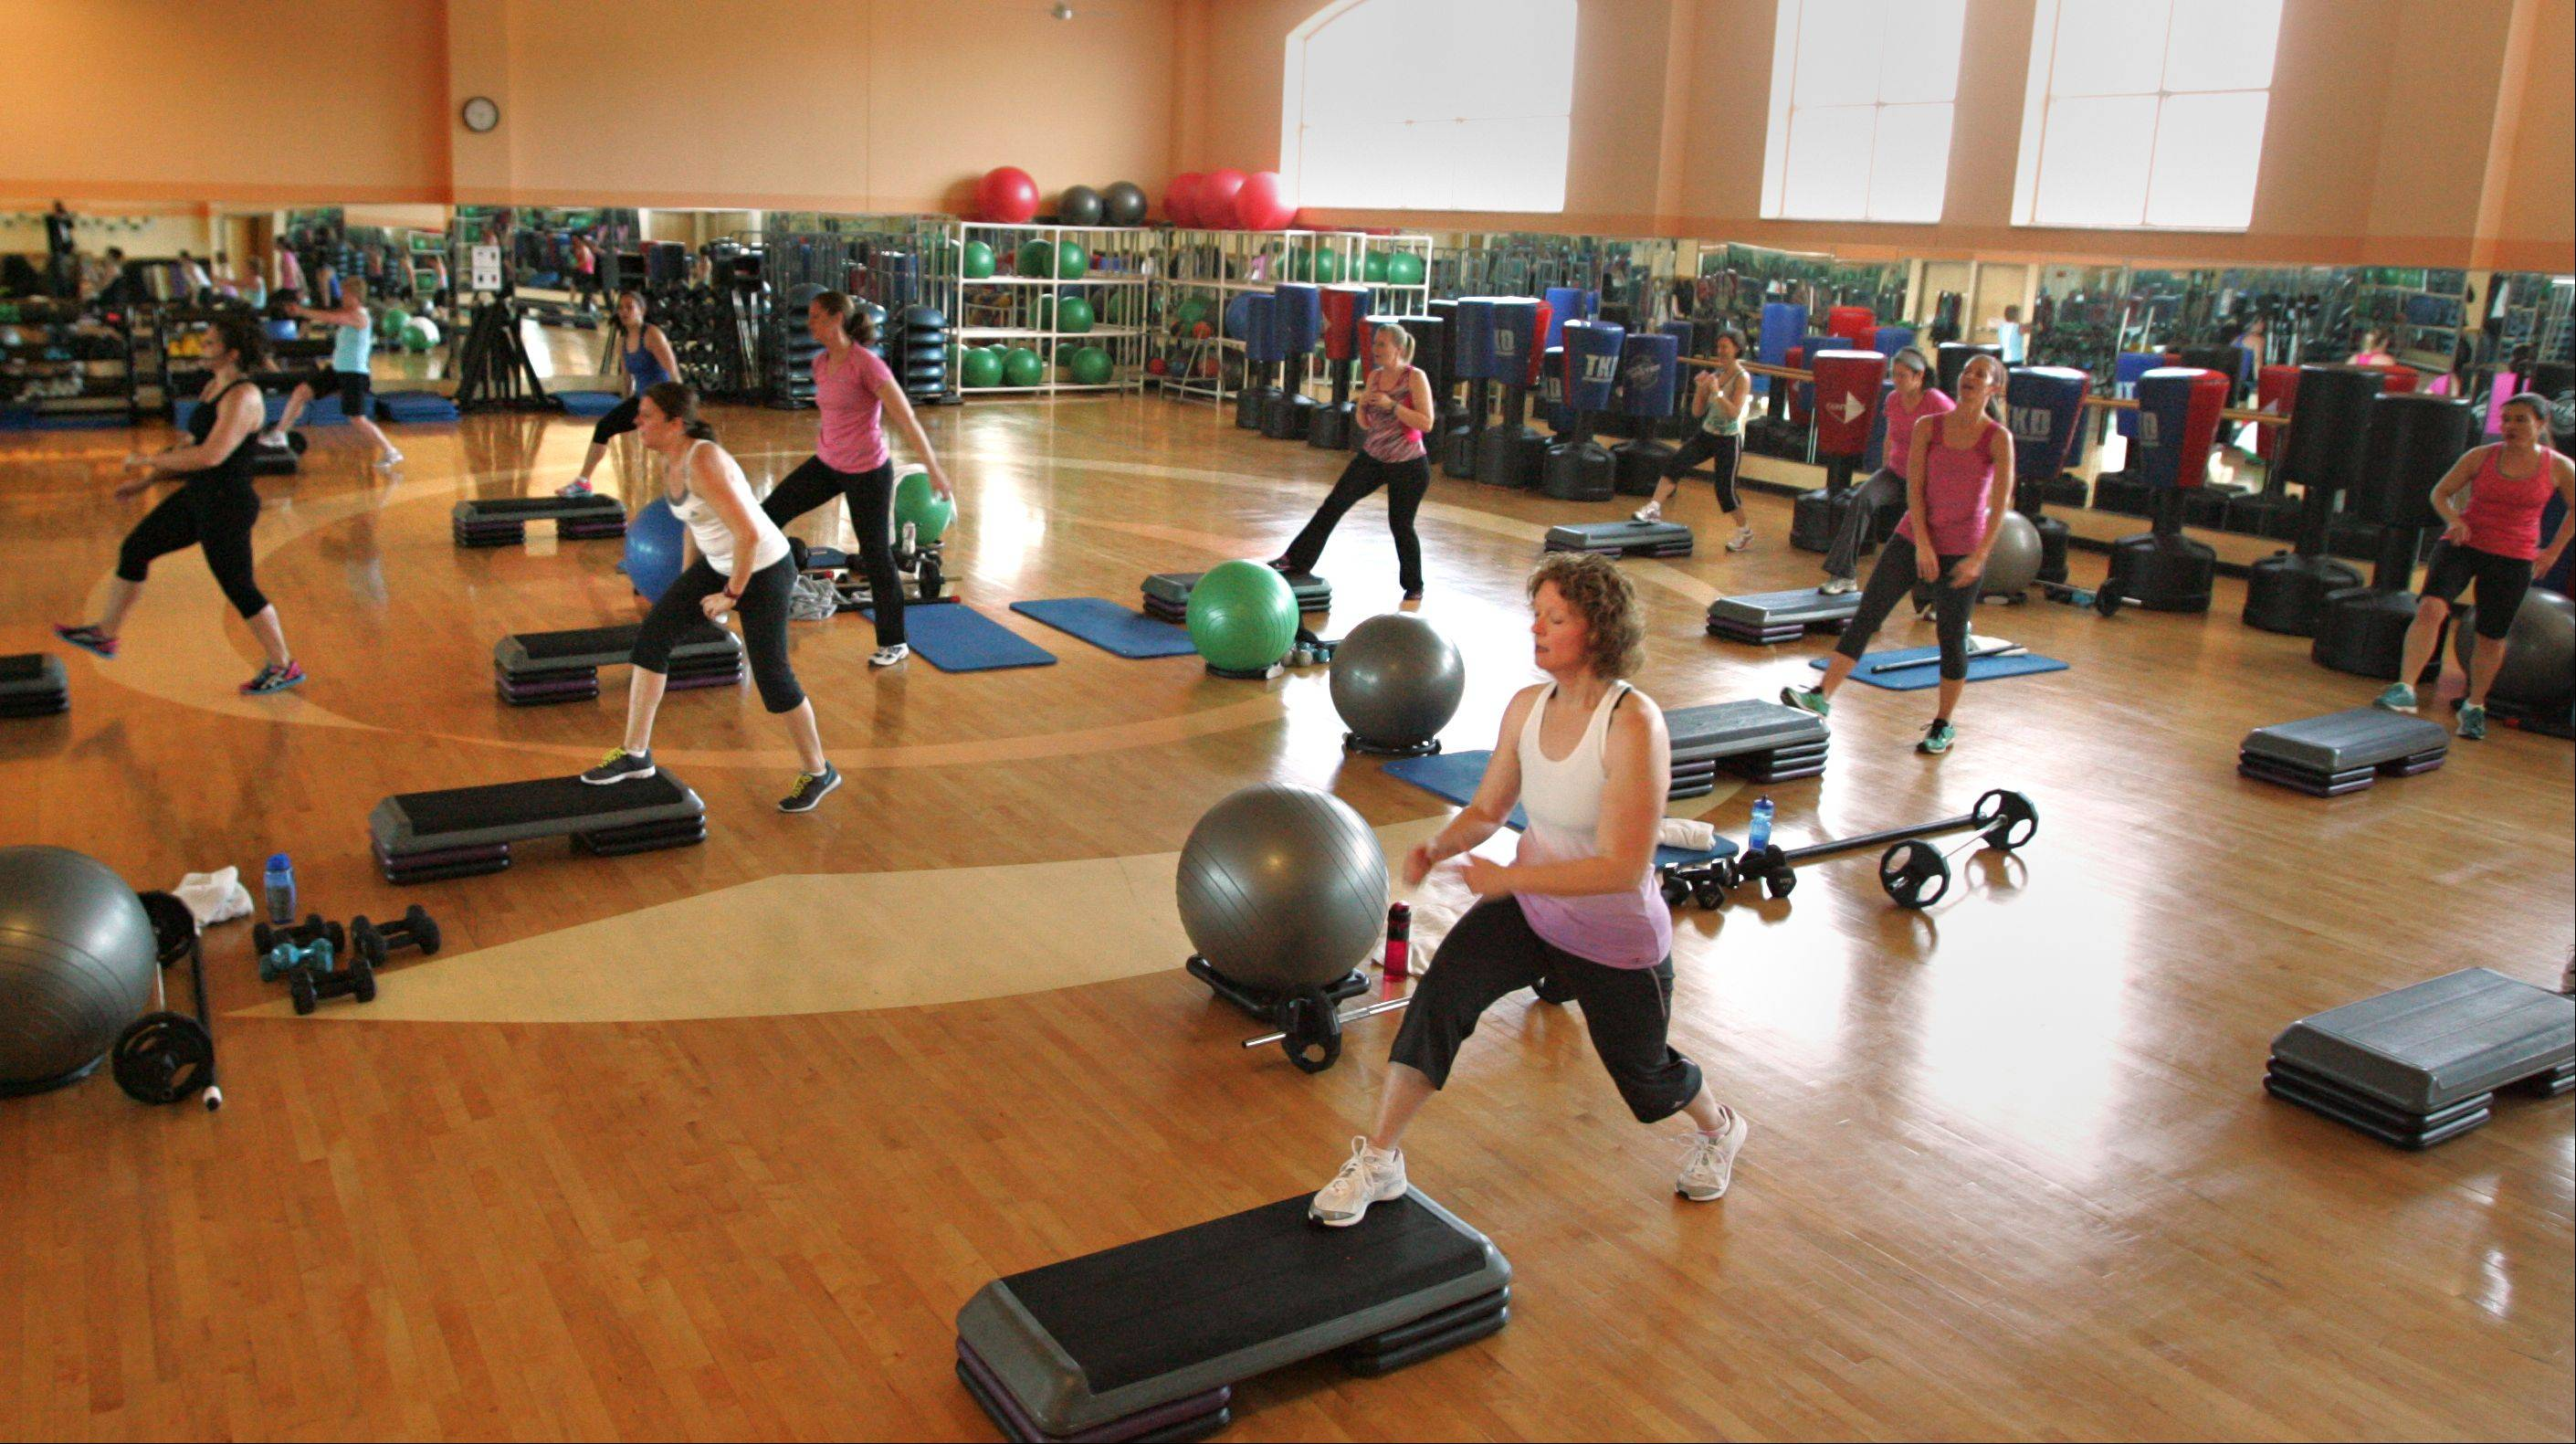 Elgin Parks and Recreation Department officials hope to set an attendance record at Elgin�s �Largest Family Fitness Class� on March 1. Pictured here is a recent Friday morning fitness class at The Centre.